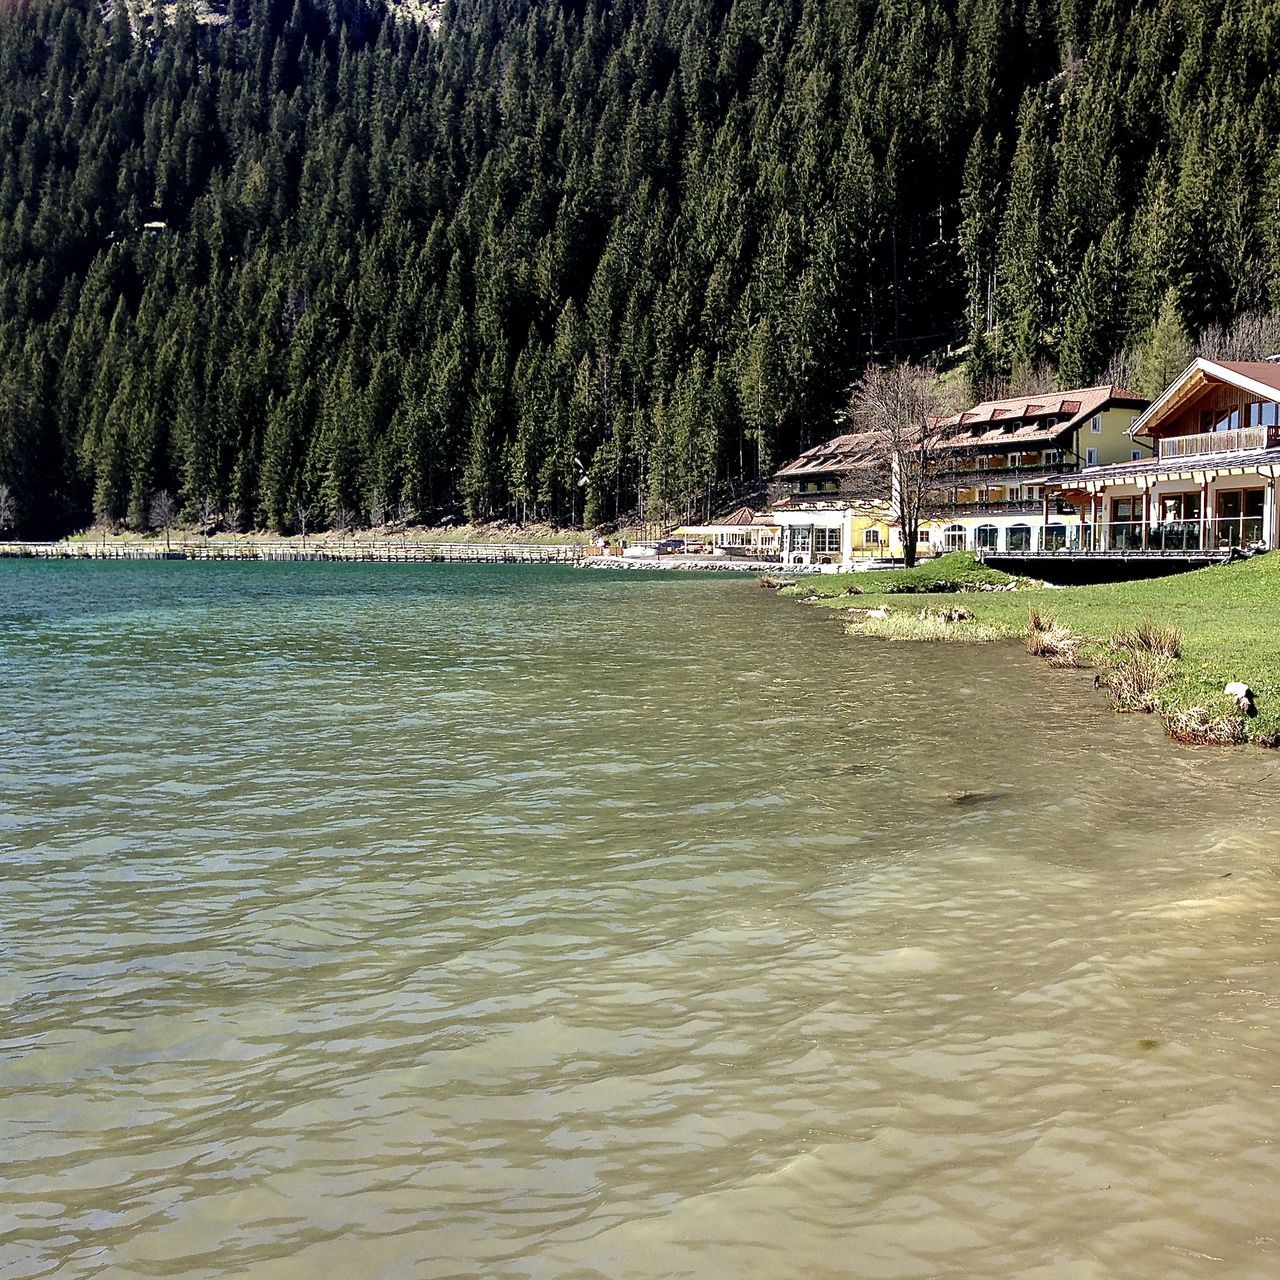 at the lake .., Haller am Haldensee Architecture Austria Beach Beauty In Nature Forest Greenery Haldensee Holiday Lake Life Light Nature Nature Outdoor Outdoors Scenics Spring Tannheimer Tal Tirol  Travel Tree Water Waterfront The Great Outdoors - 2017 EyeEm Awards